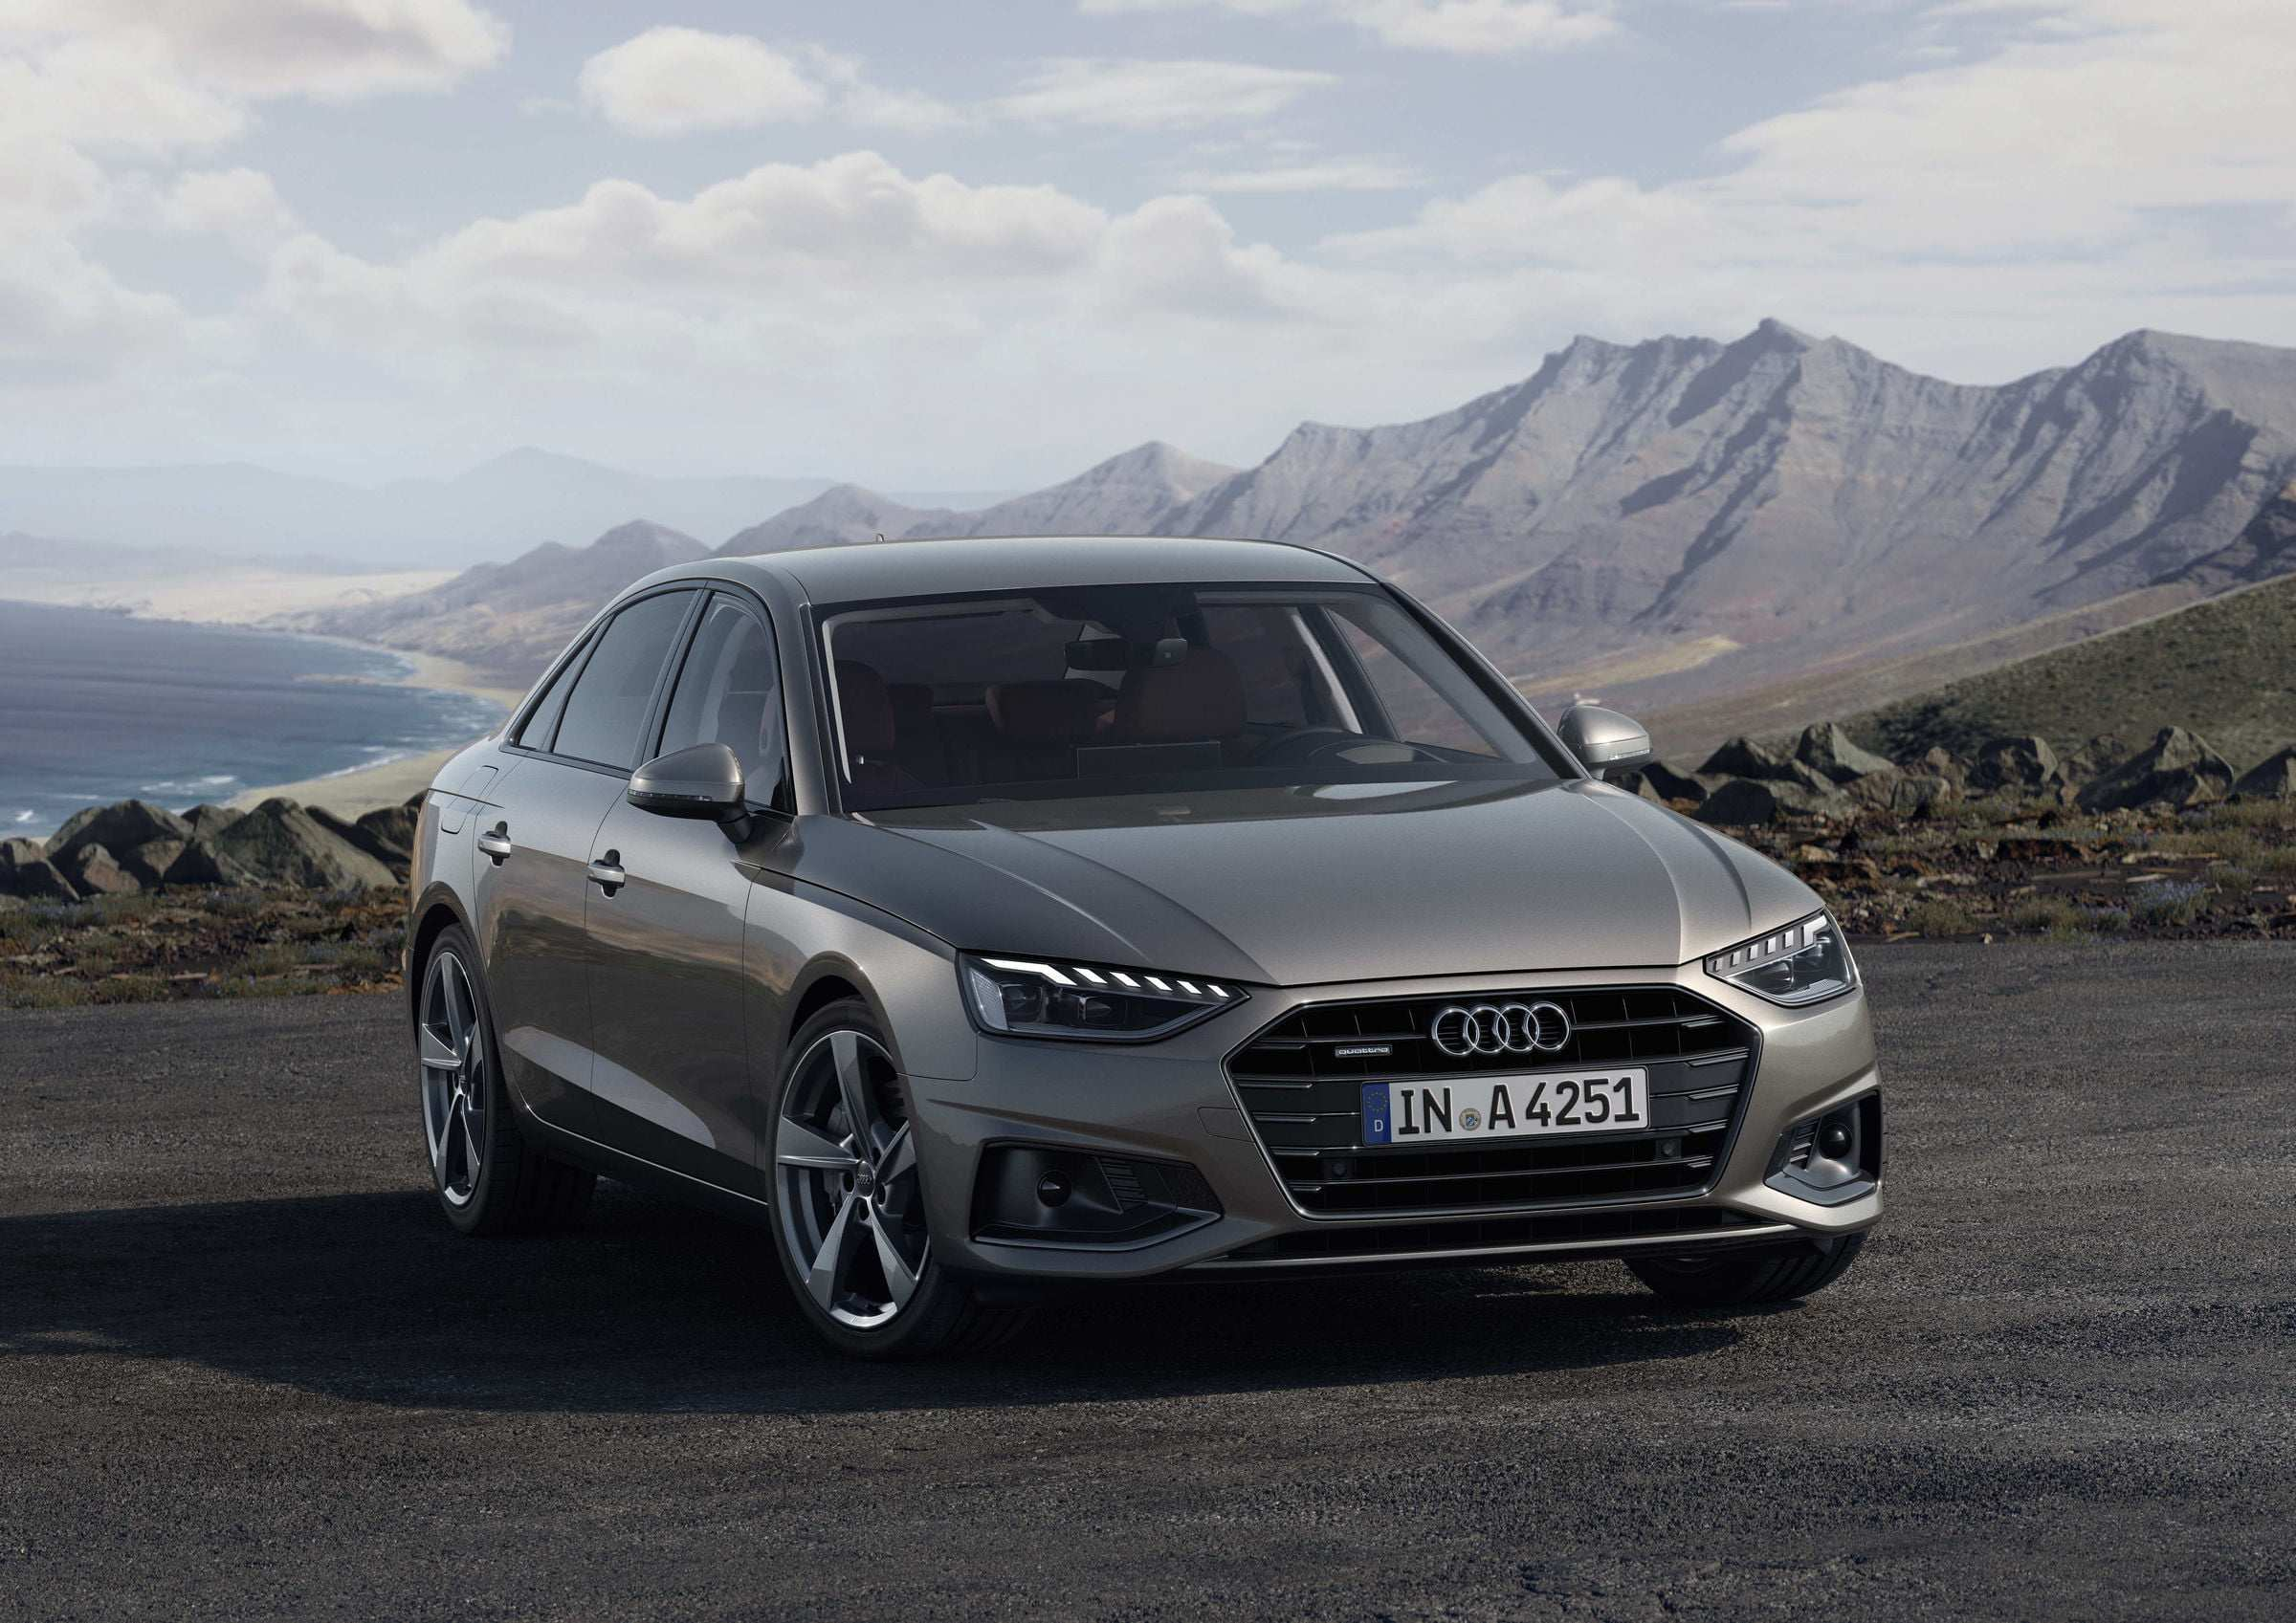 53 The Audi A4 Model Year 2020 Pricing